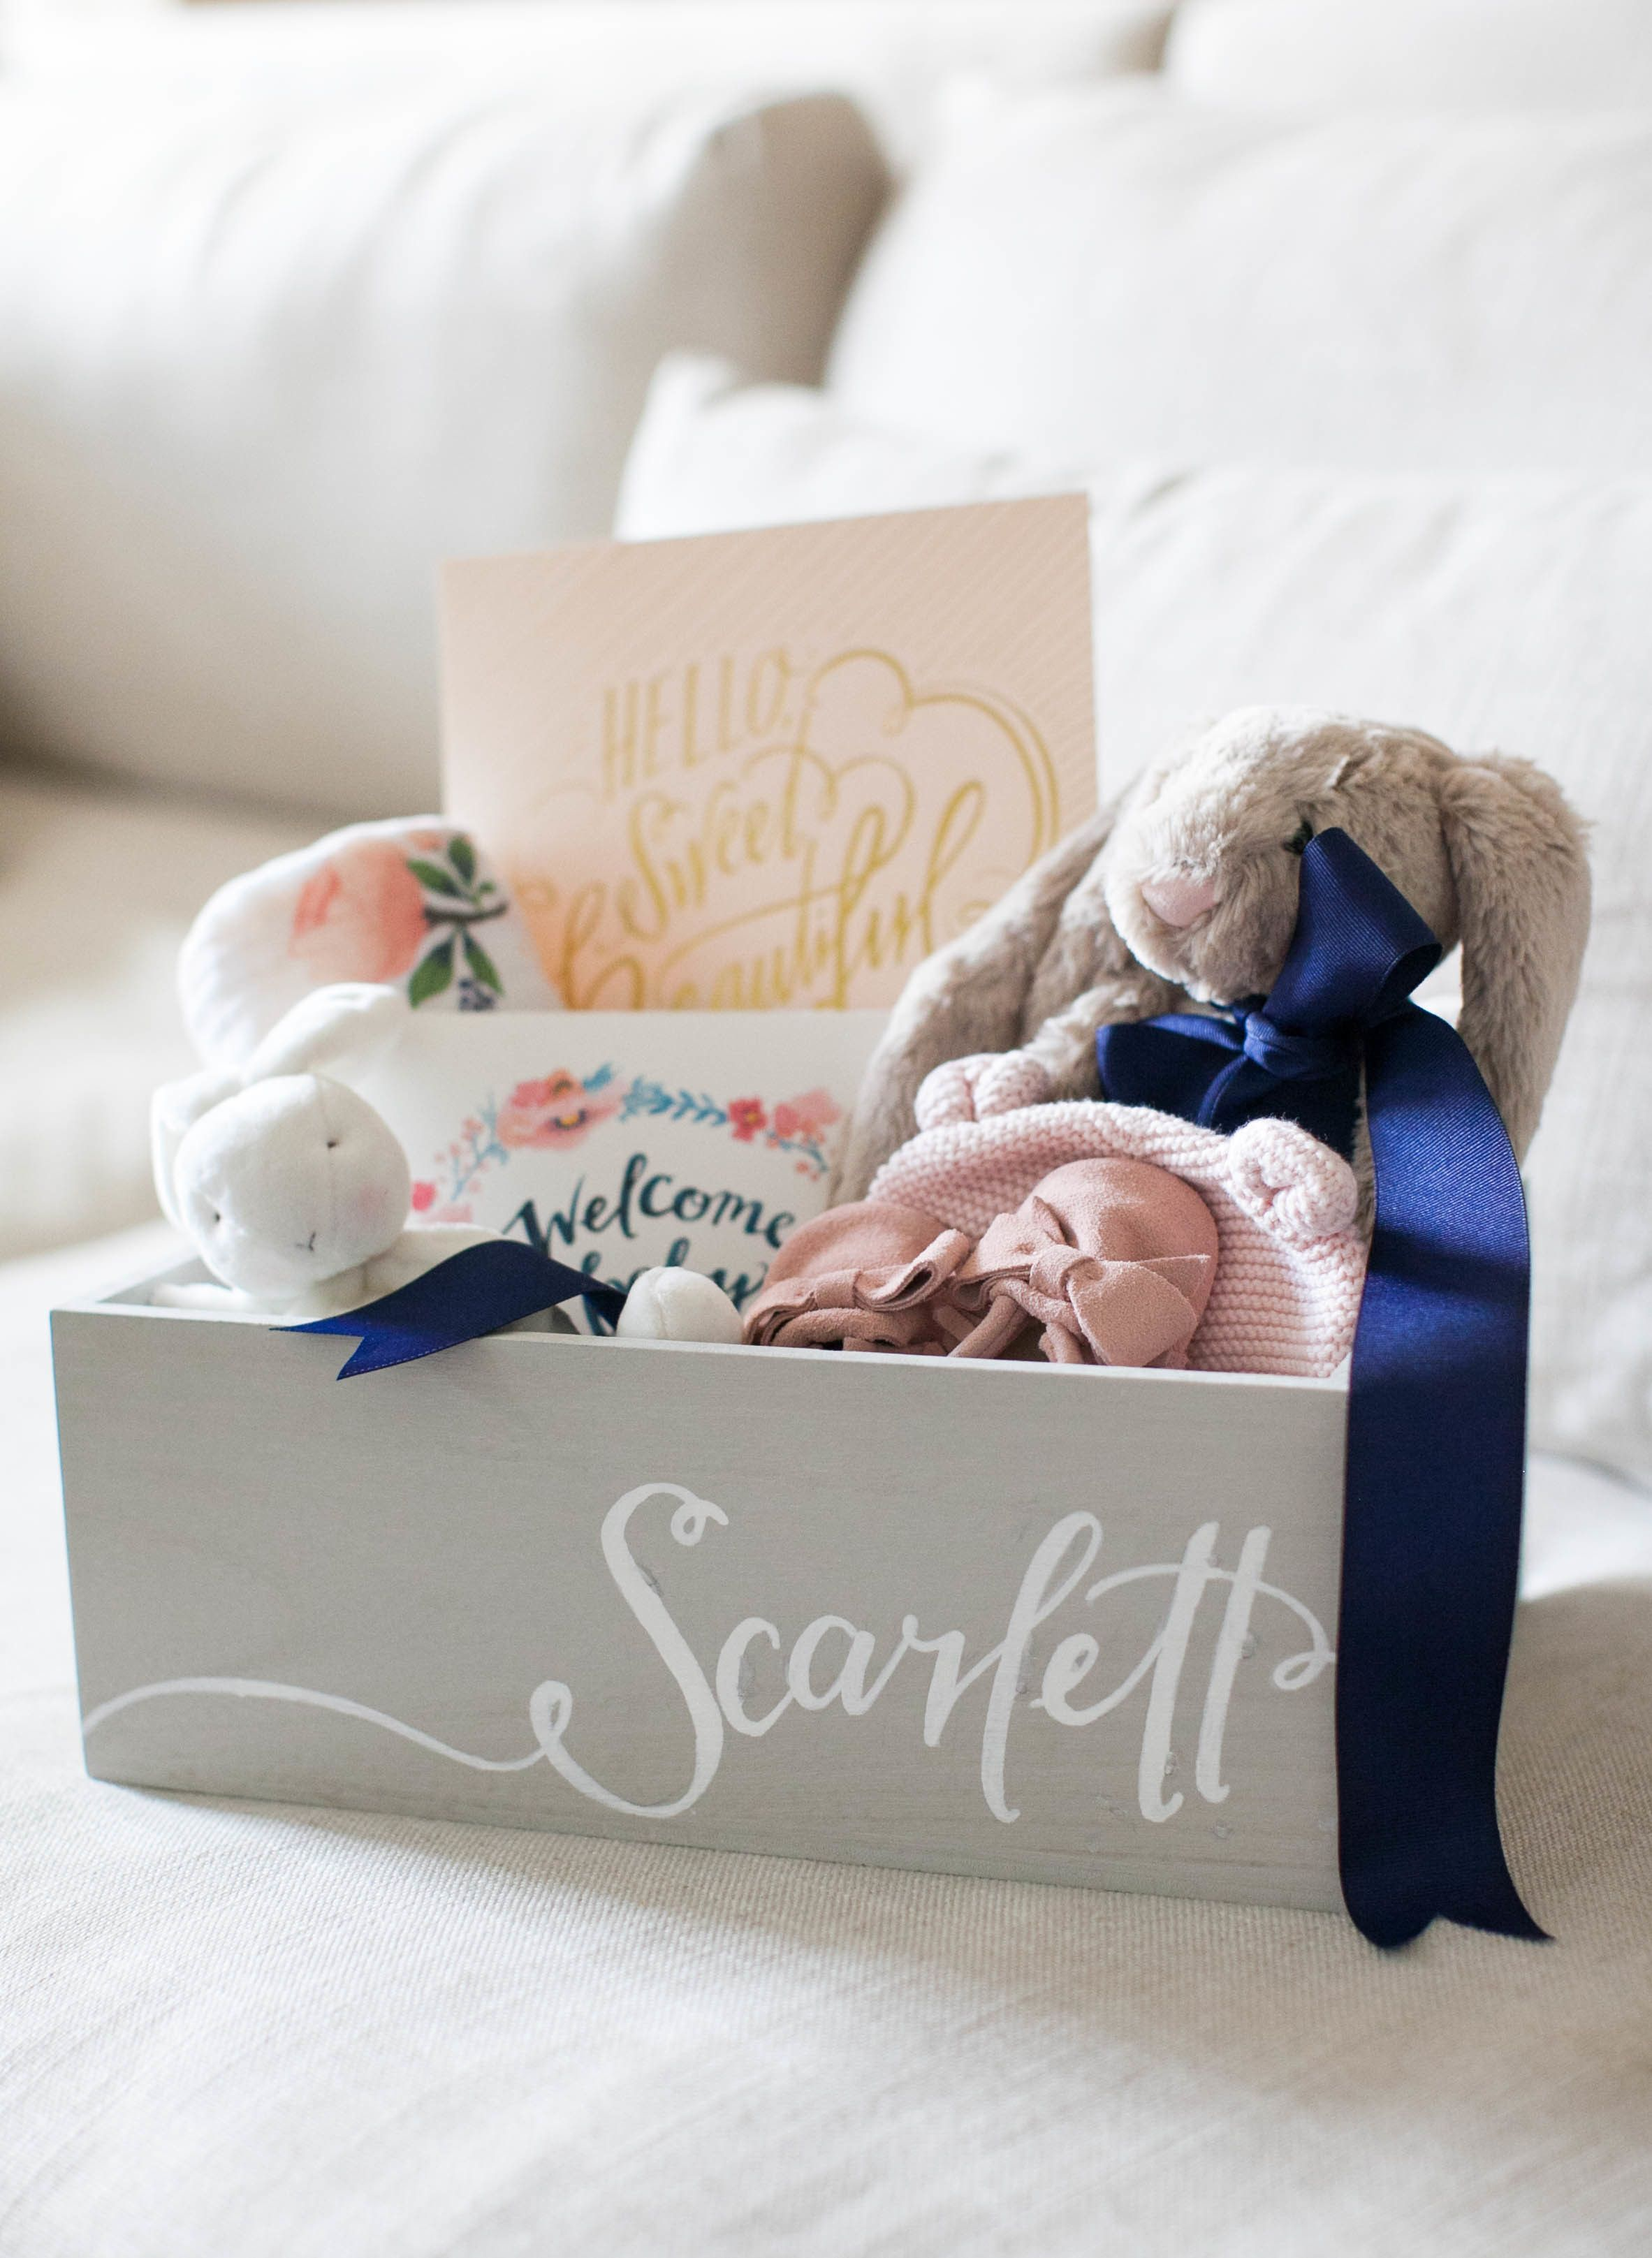 Welcome Baby Gift Box - http://www.stylemepretty.com/living/2015/10/29/little-bunny-baby-gift-box/